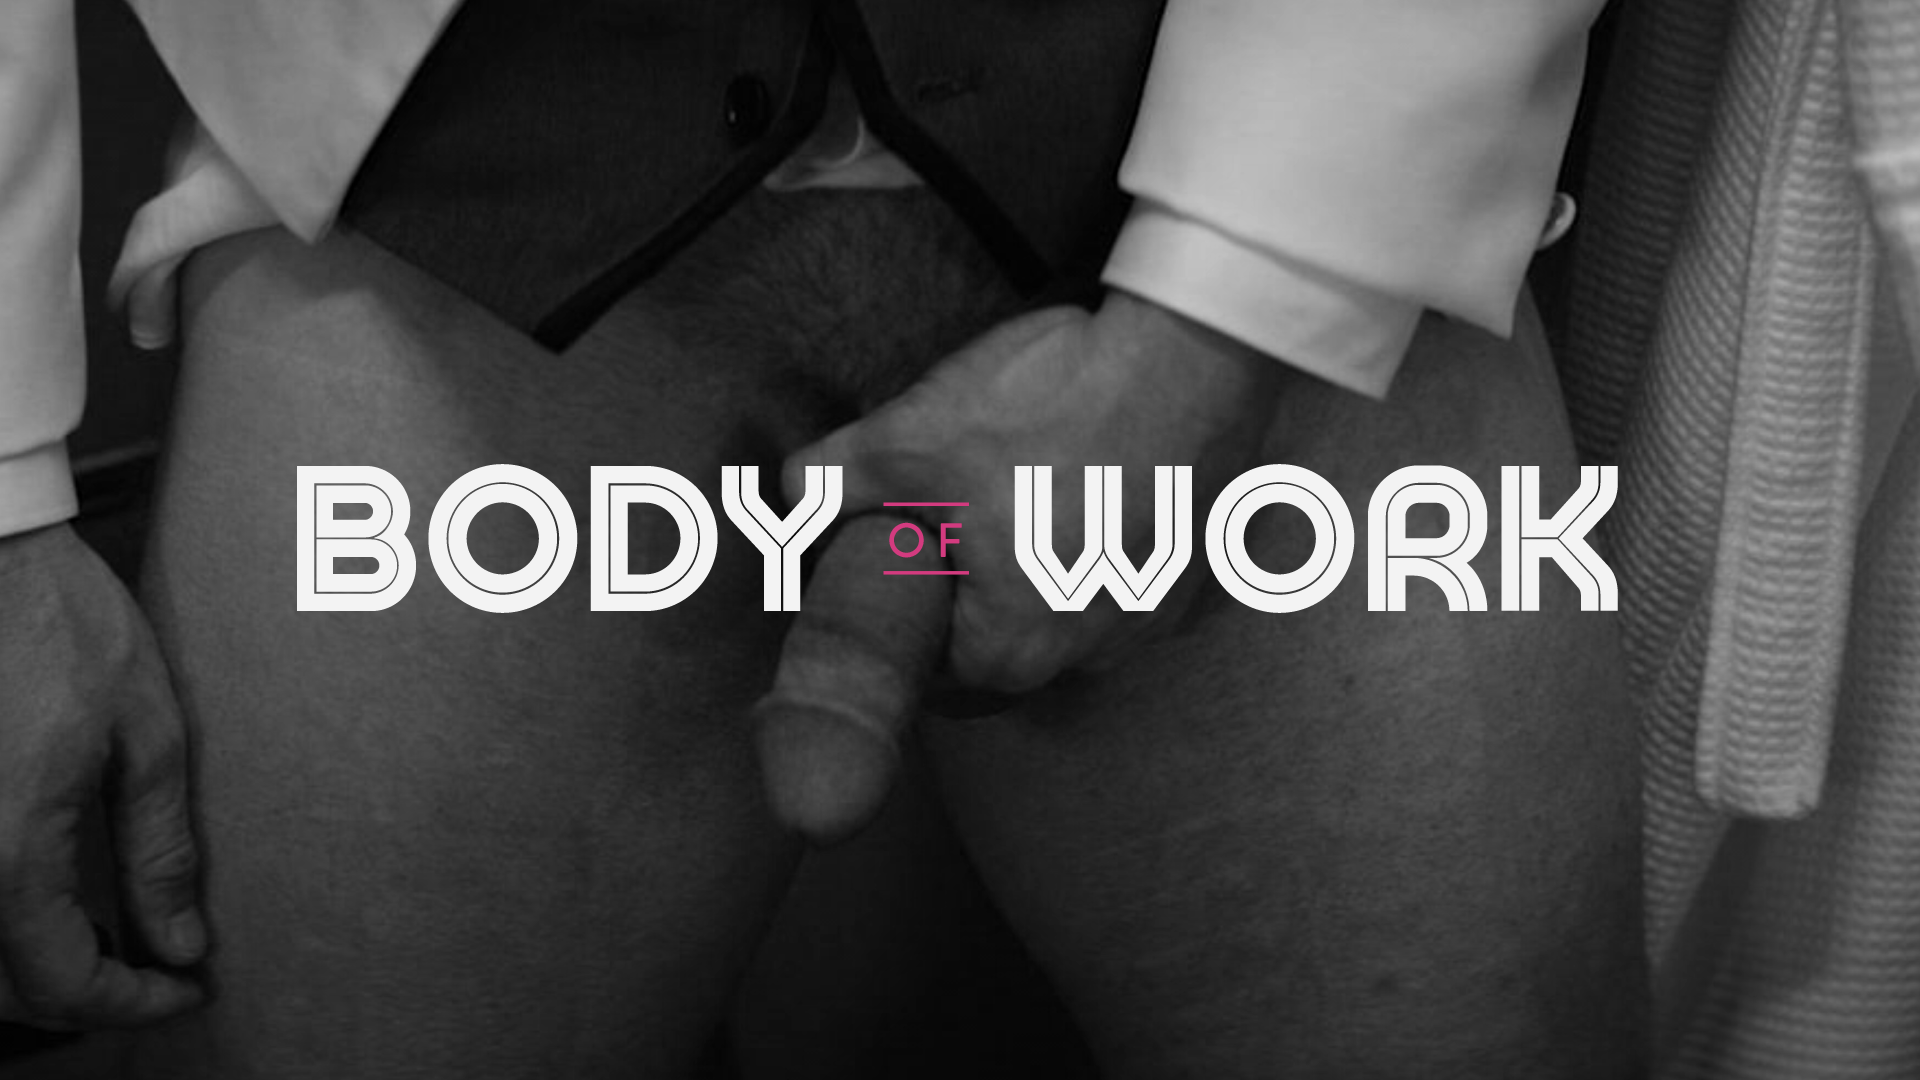 Bodyofwork adam devine final large thumbnail 3 override